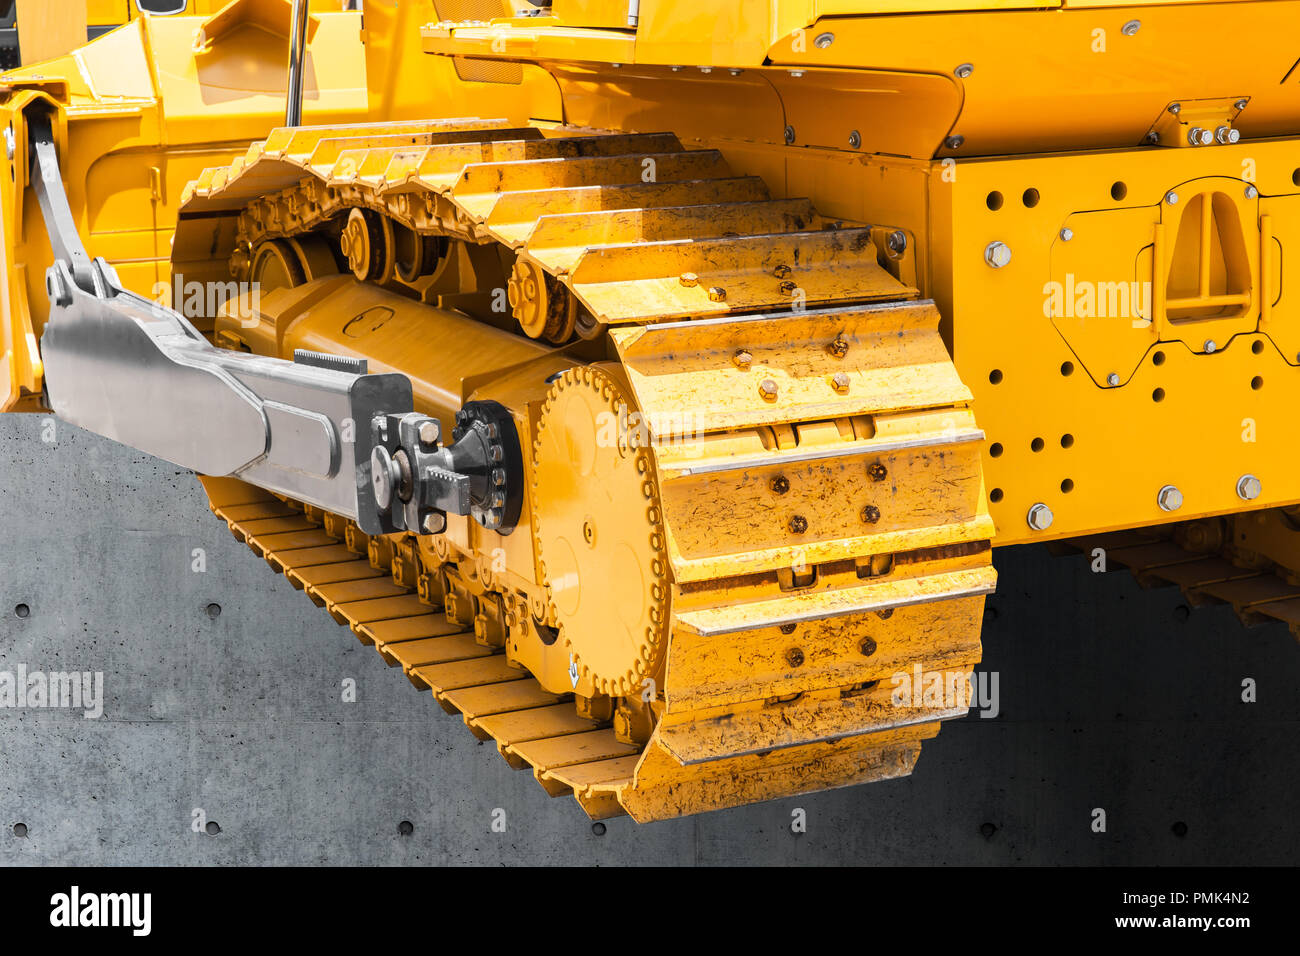 Continuous track tank tread construction machine steel chains wheels excavator - Stock Image